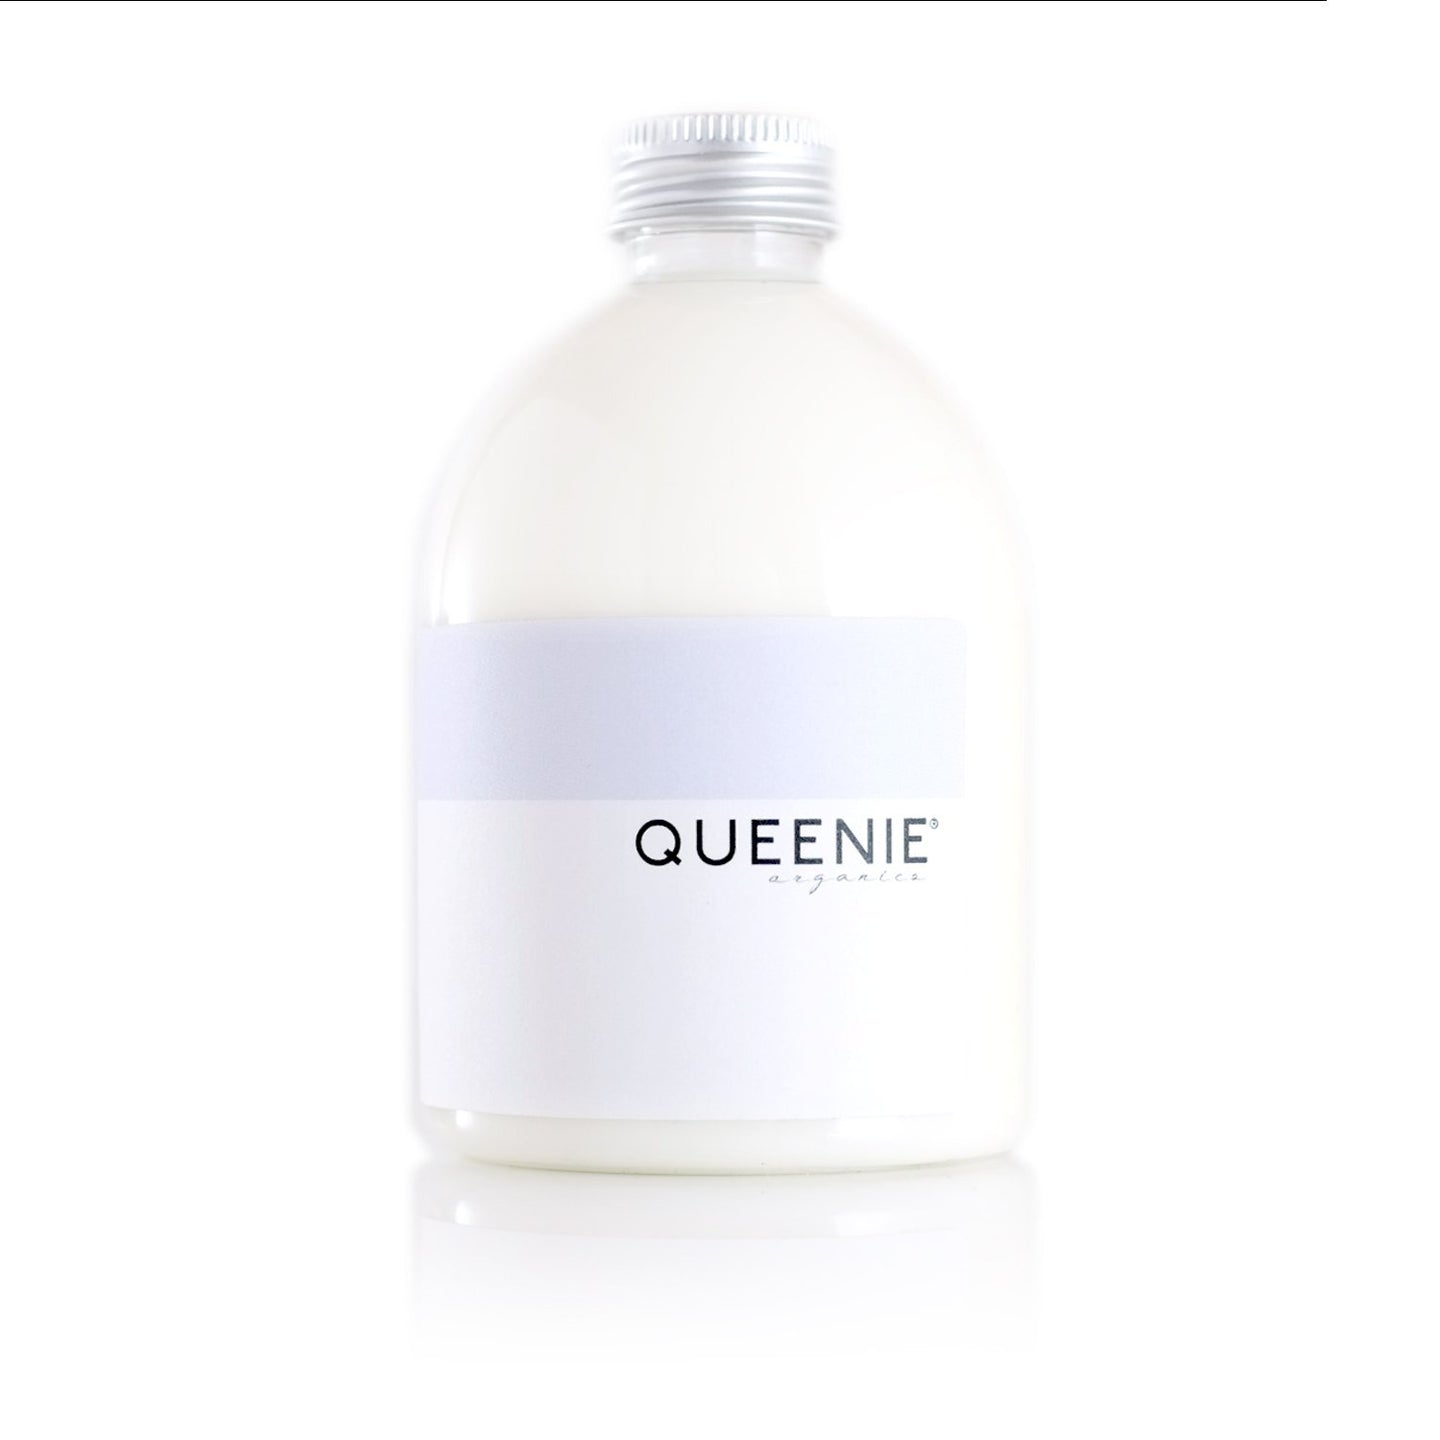 FRANKINCENSE AND LAVENDER HAND & BODY CREAM REFILL beauty from Queenie Organics curated by pu·rist